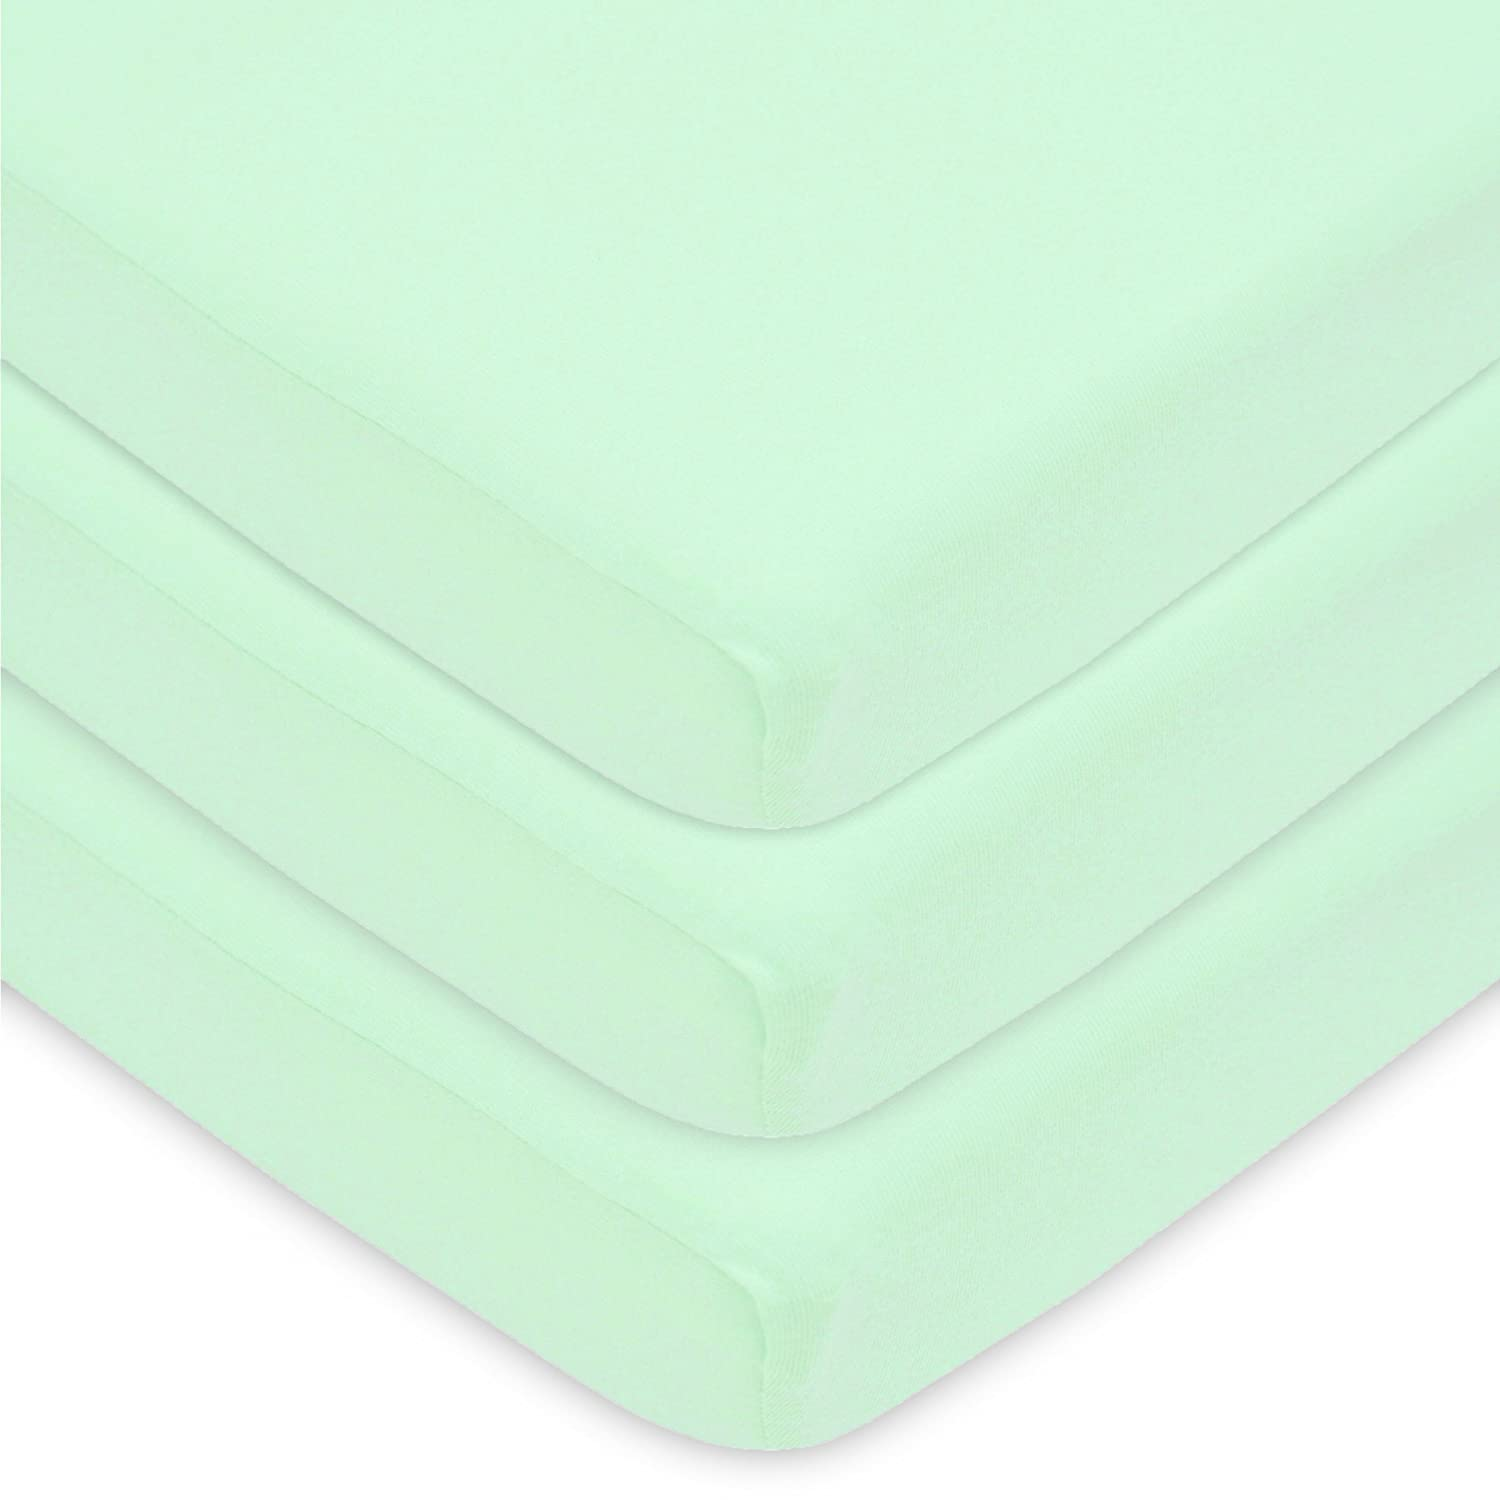 """American Baby Company 100% Natural Cotton Value Jersey Knit Fitted Portable/Mini-Crib Sheet, Mint, 24"""" x 38"""" x 5"""", Soft Breathable, for Boys and Girls, Pack of 3"""